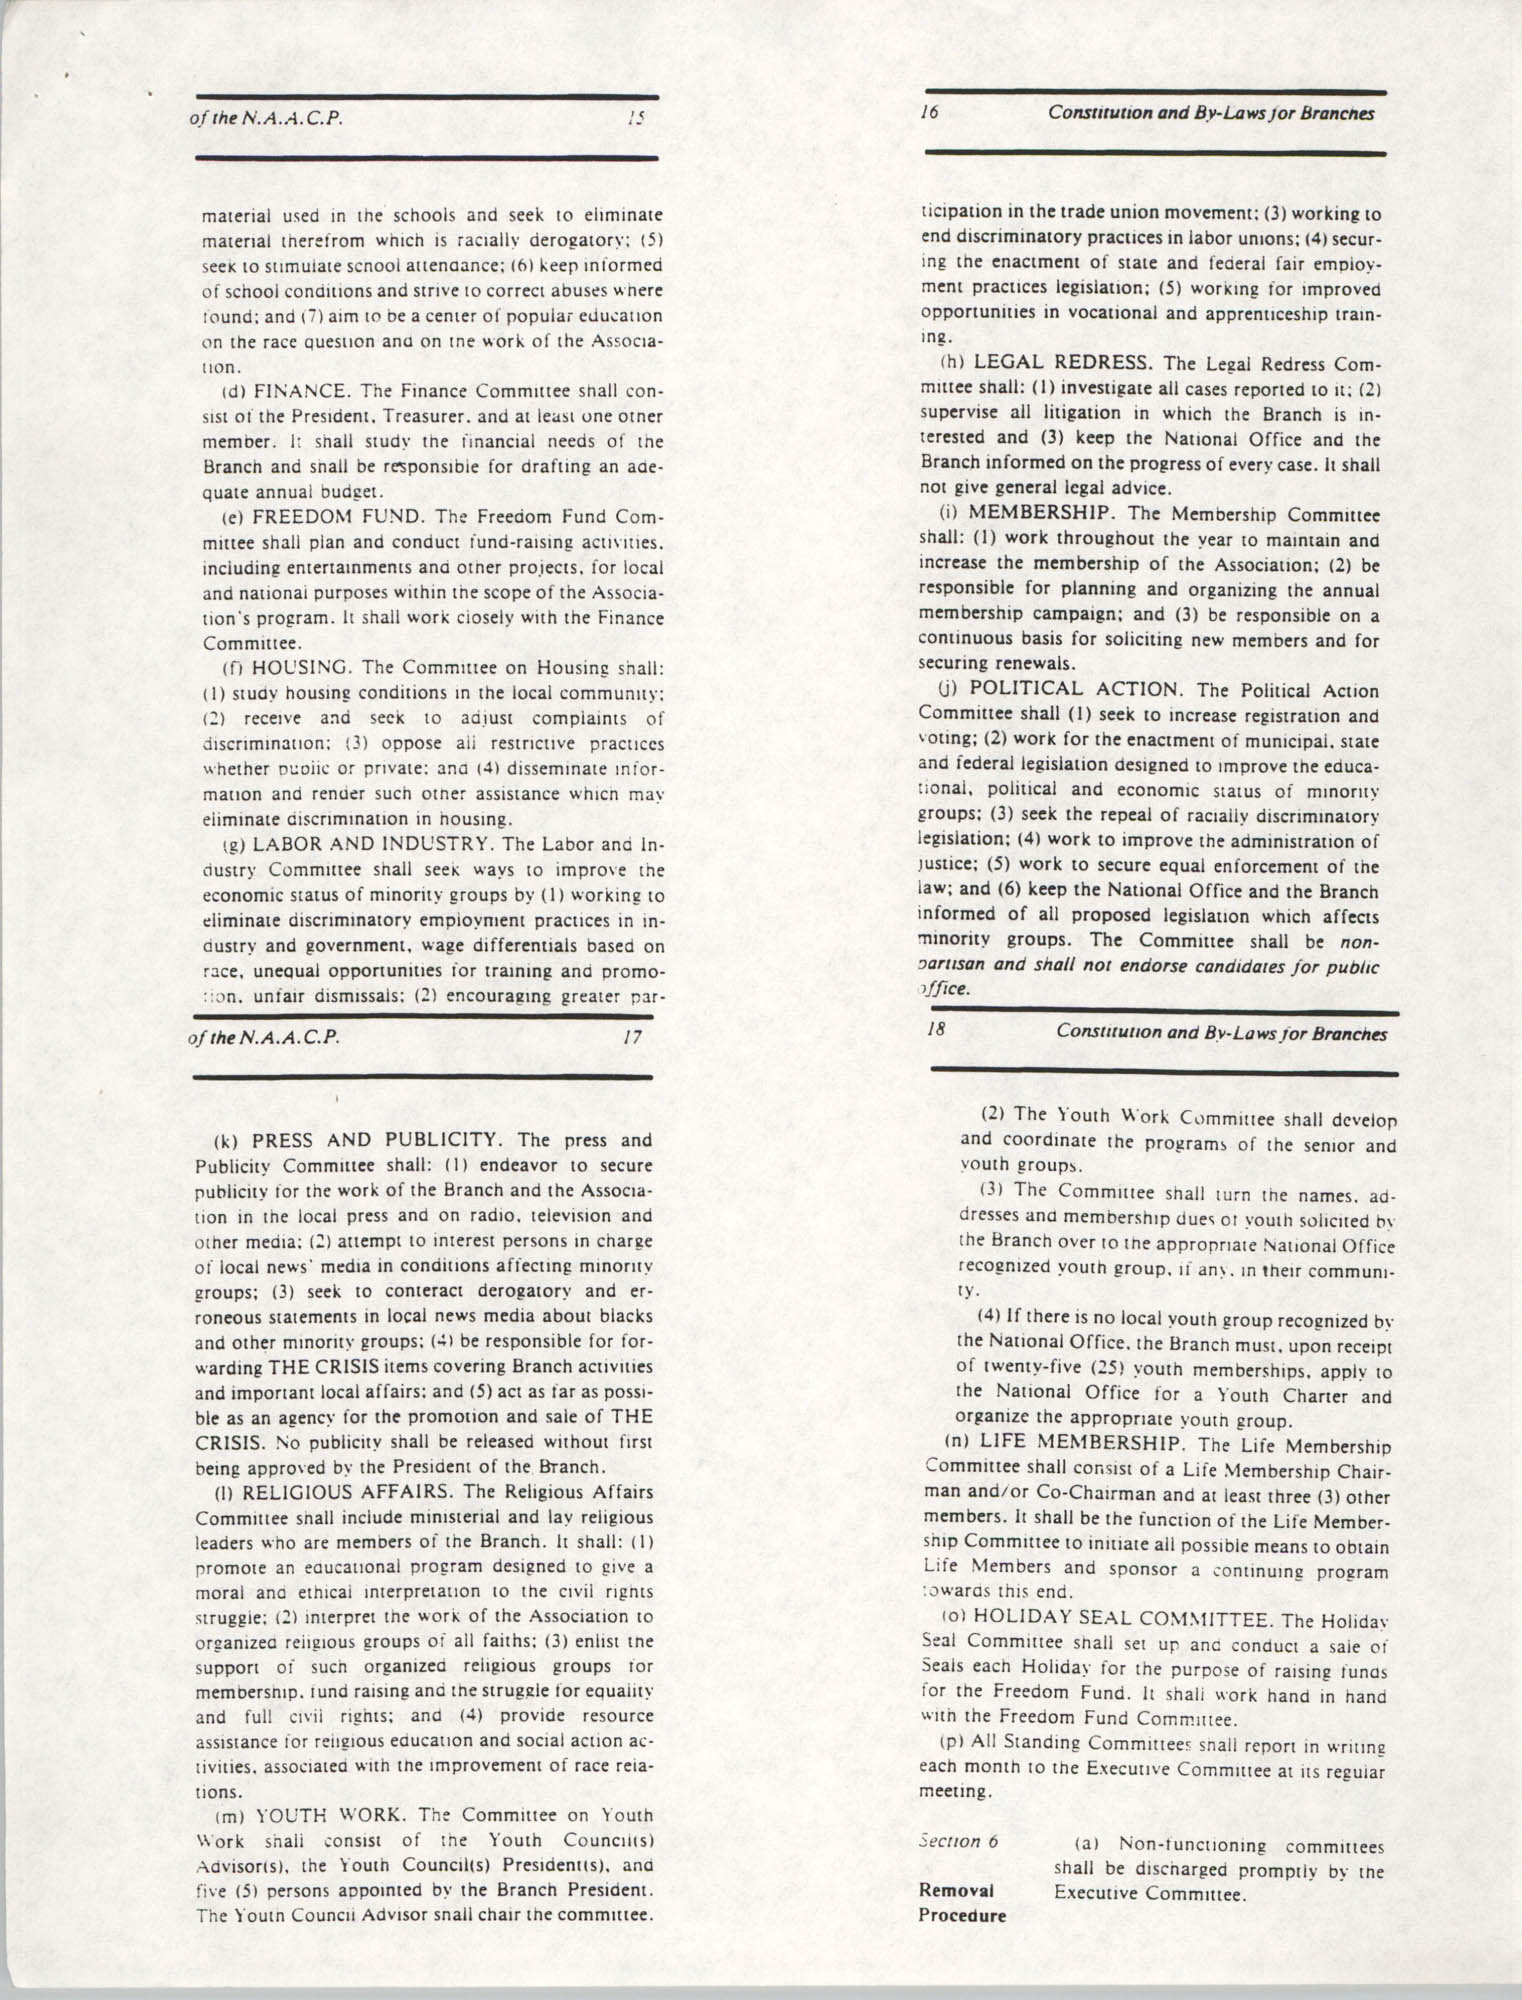 Constitution and By-Laws for Branches of the NAACP, May 1988, Pages 15-18